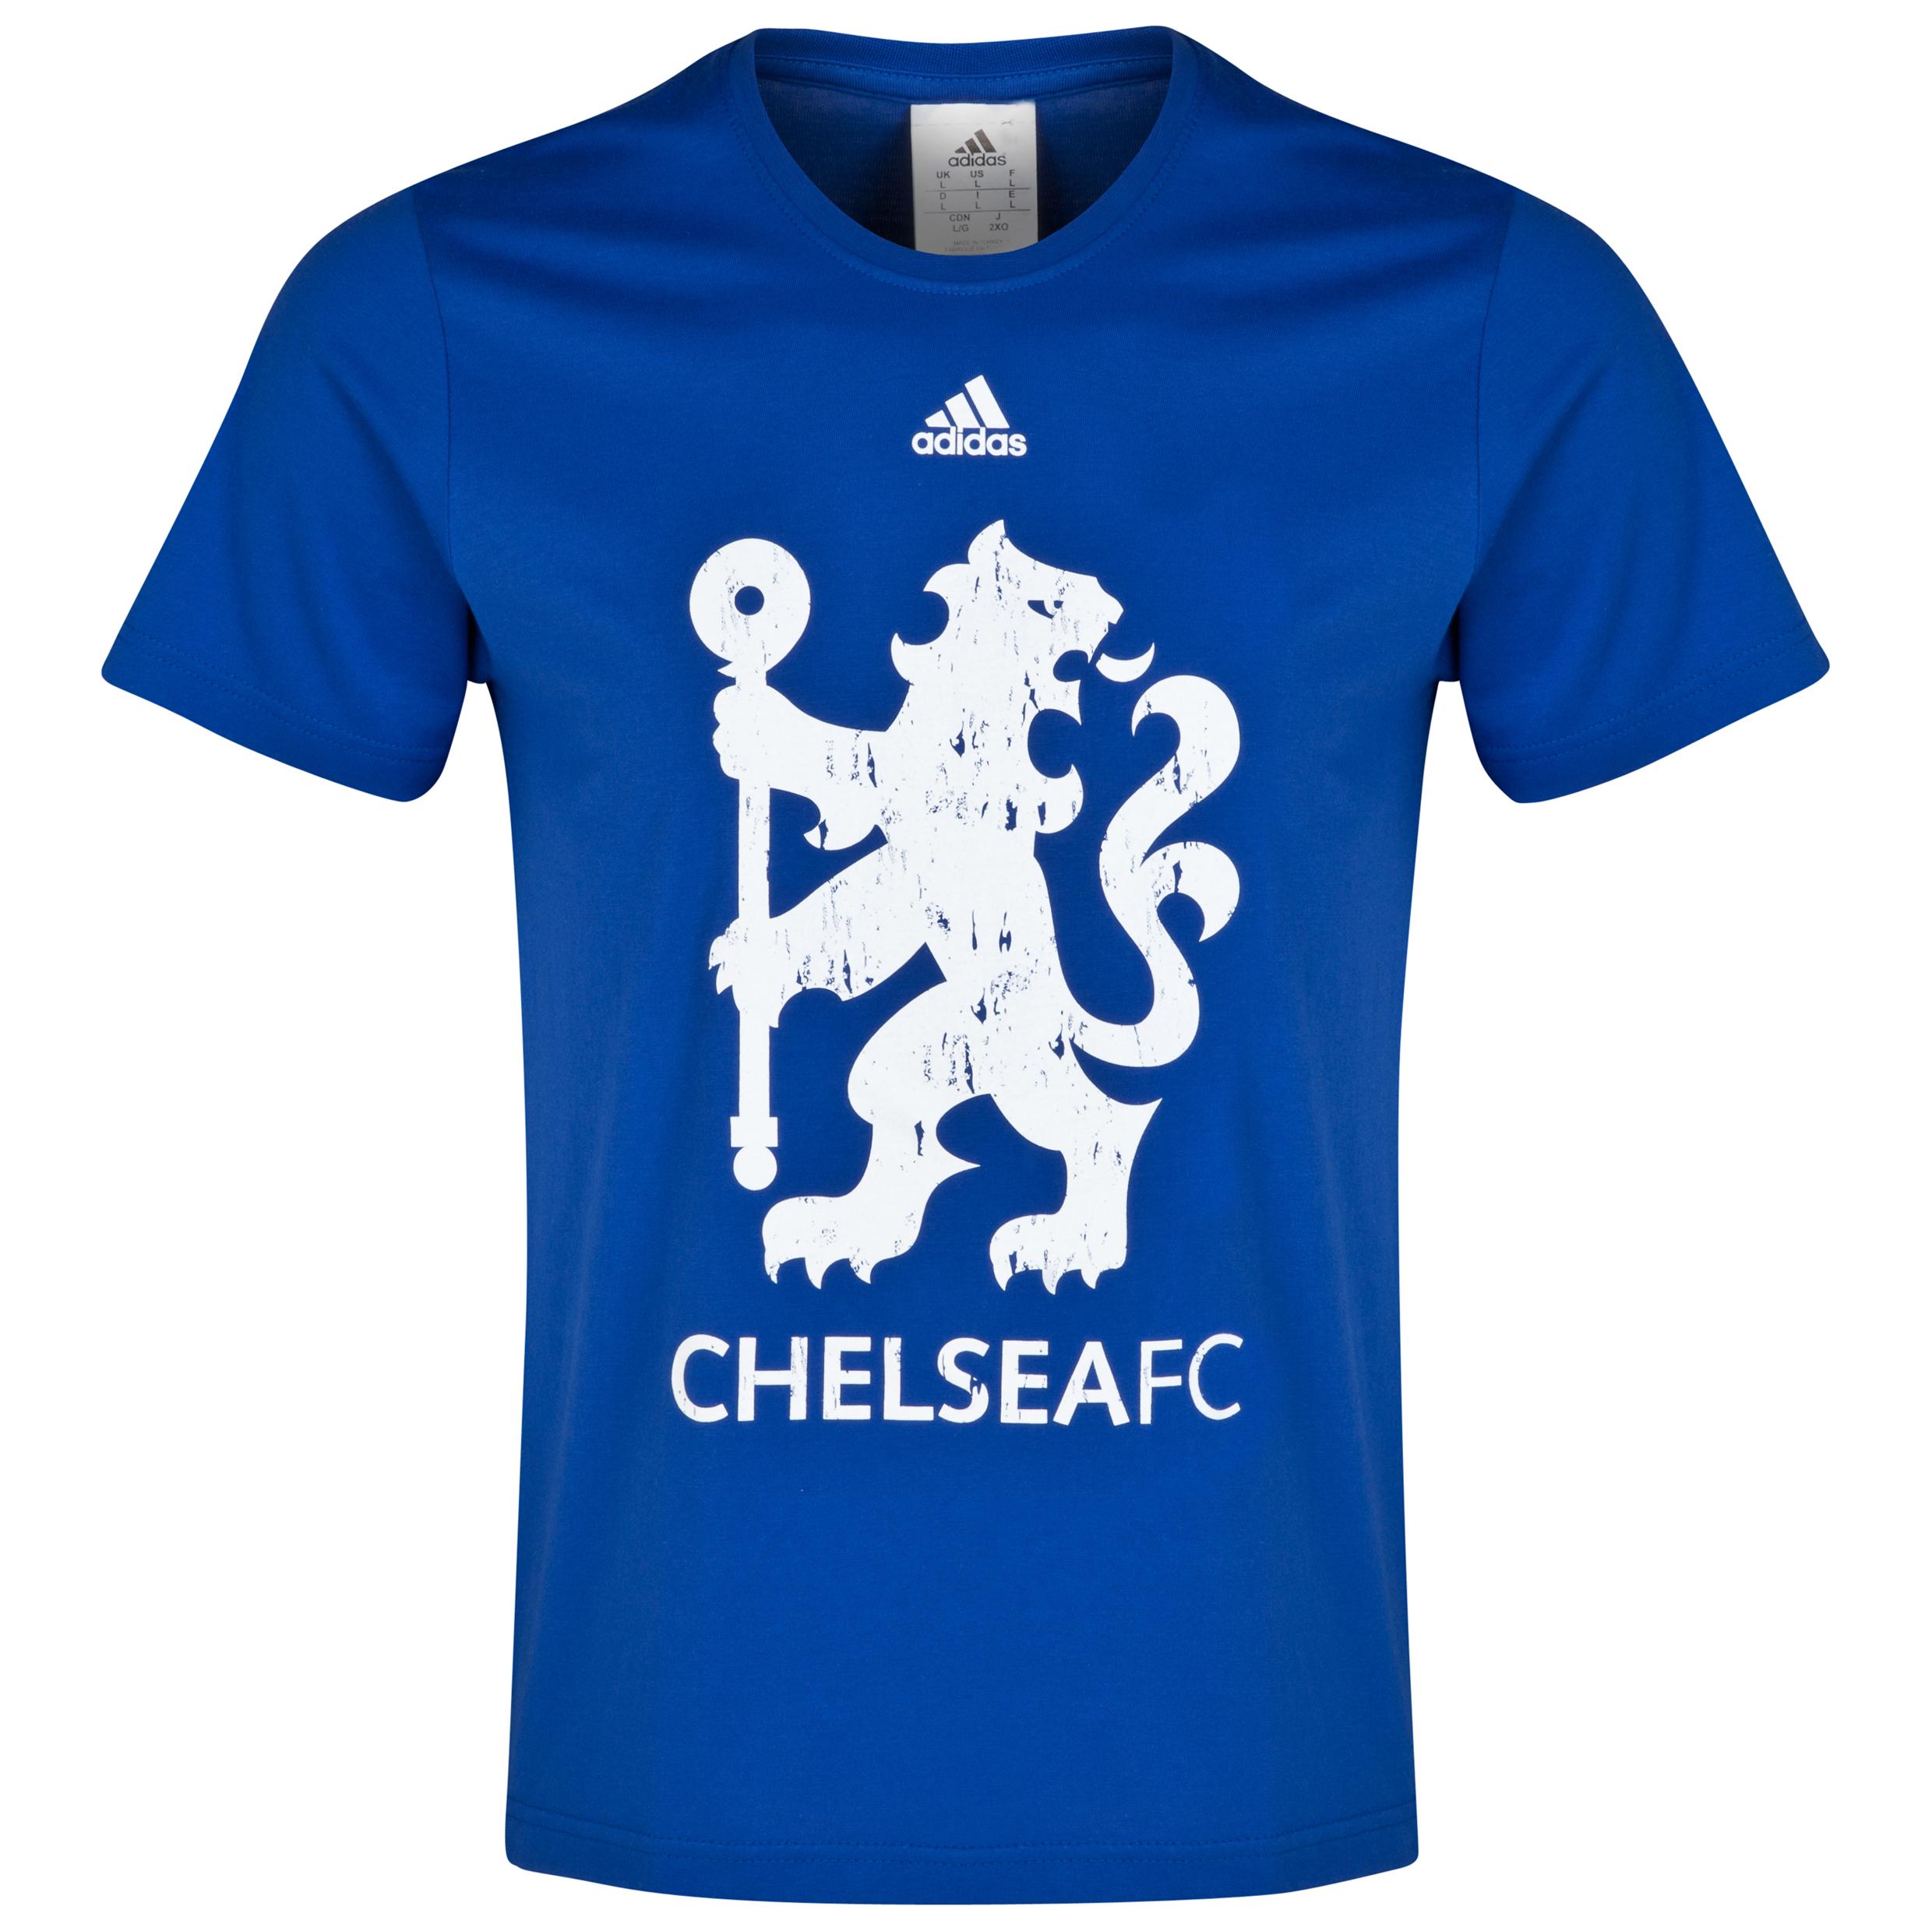 Chelsea Adidas Distressed Lion T-Shirt Blue